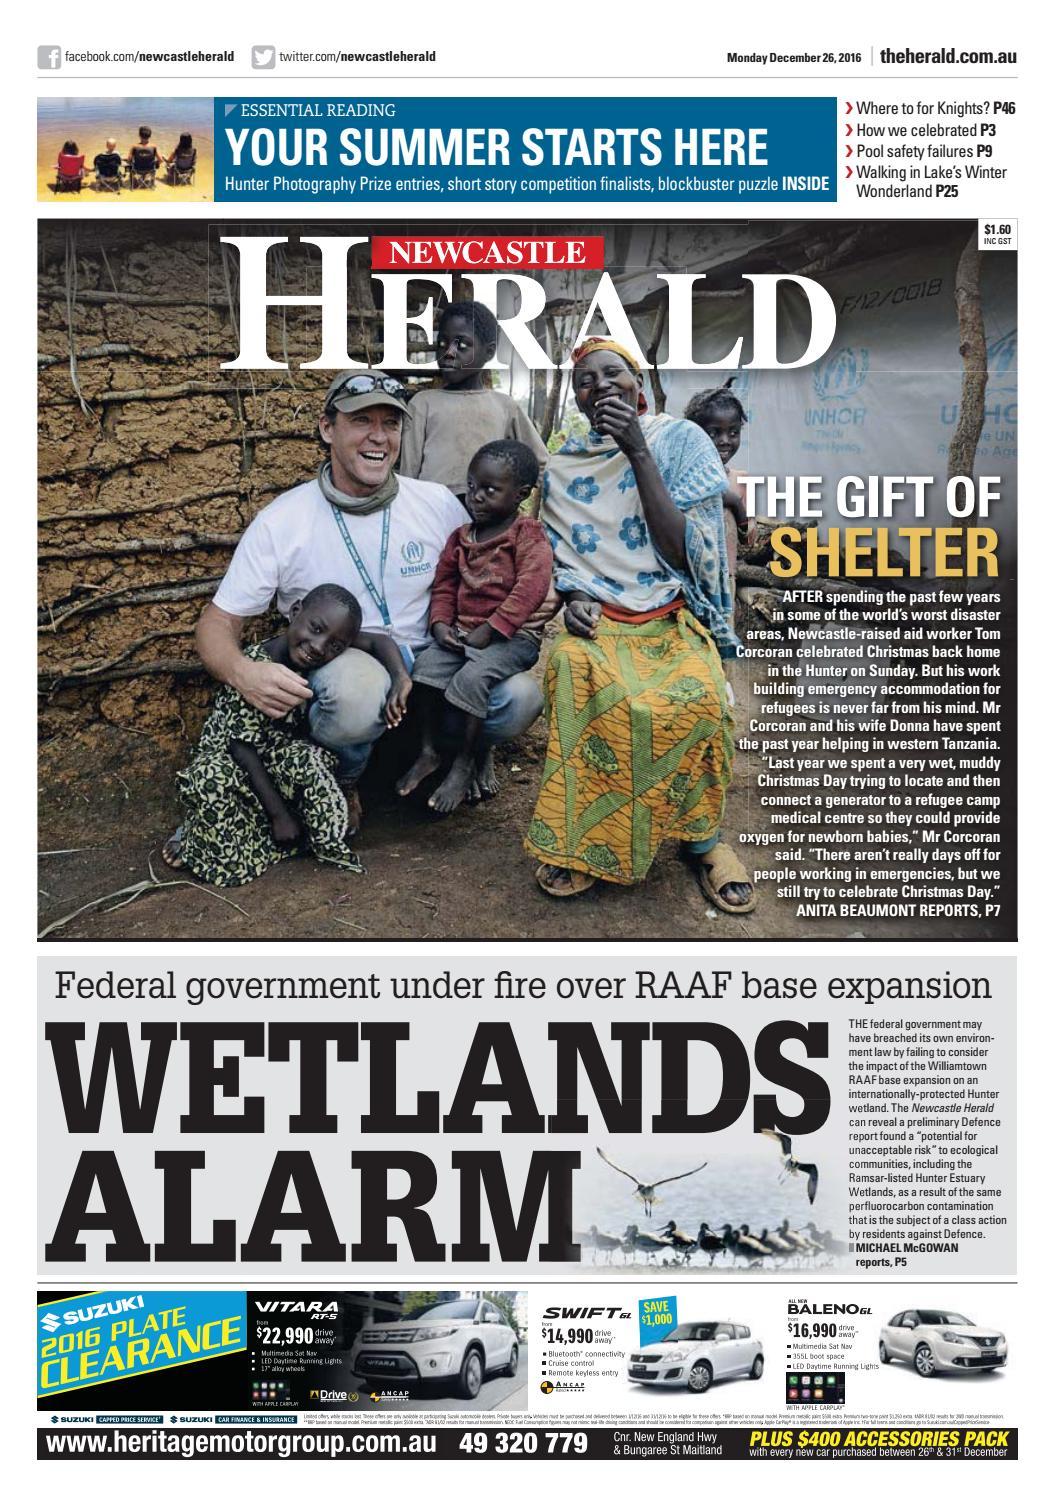 Fairfax front pages: Saturday, September 27, 2014